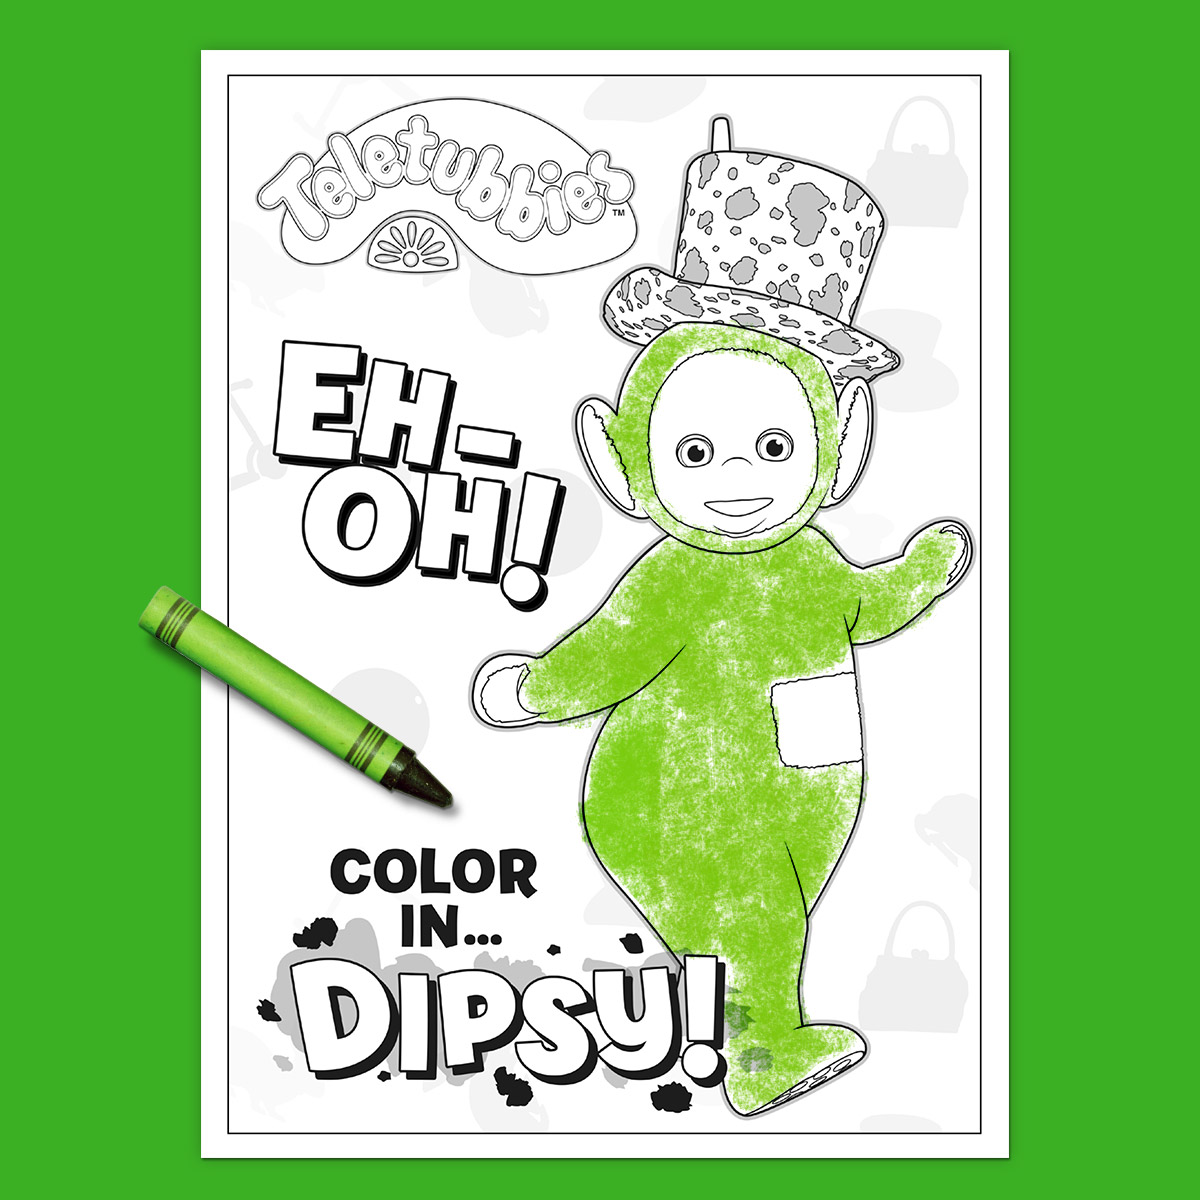 Teletubbies Coloring Page: Dipsy | Nickelodeon Parents